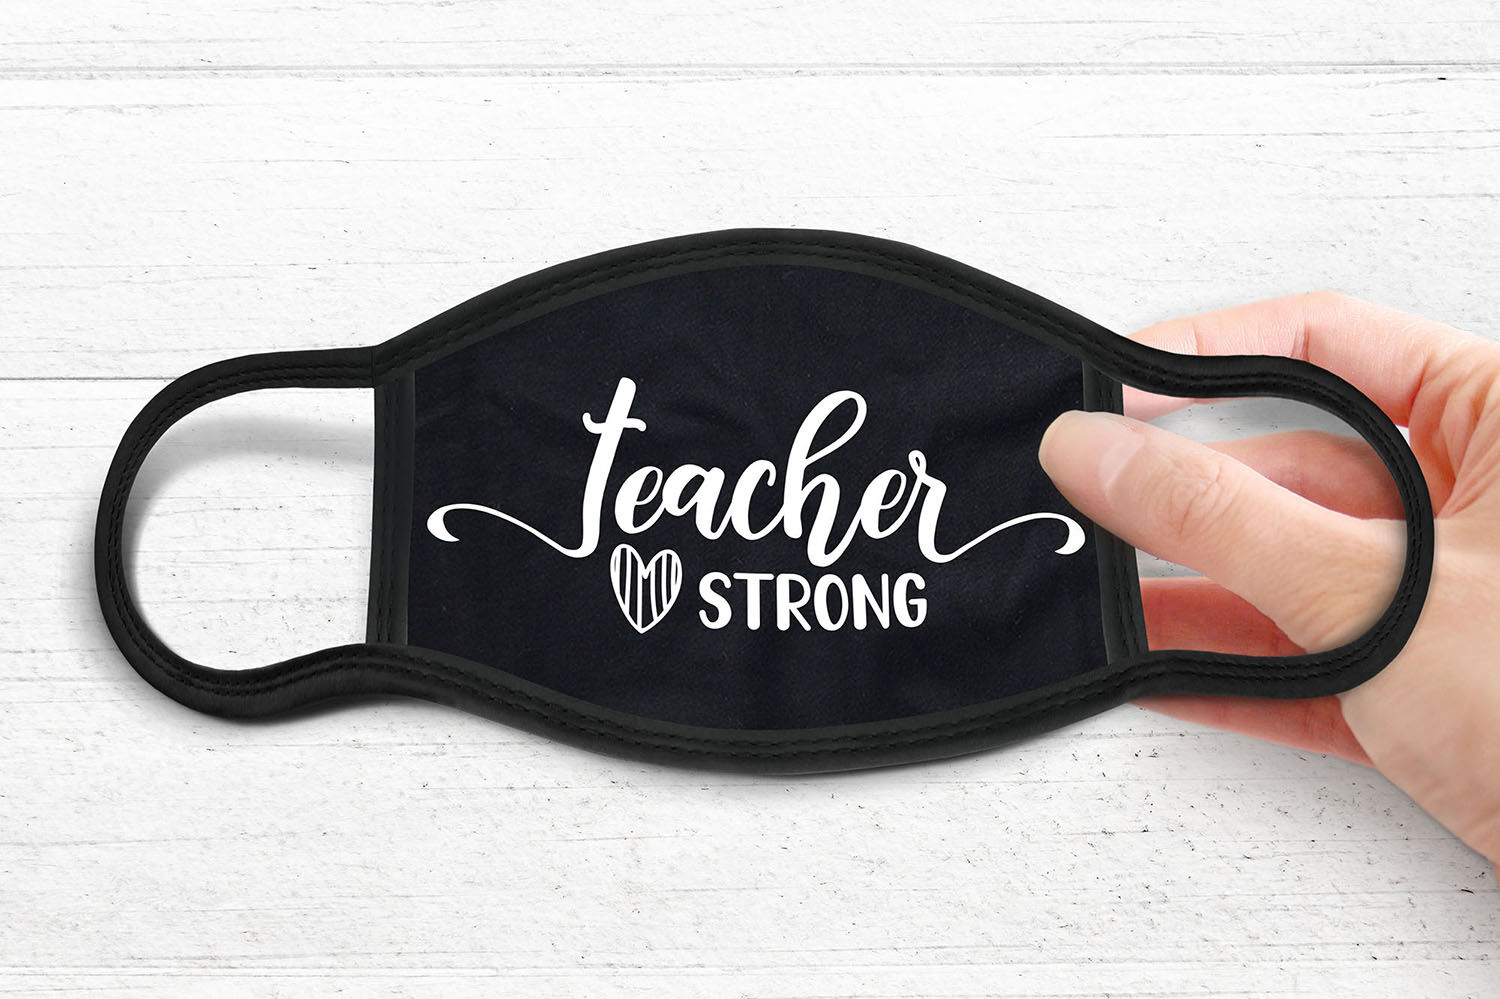 Teacher Strong Face Mask Svg Face Mask Sayings Svg Dxf Png By Craftlabsvg Thehungryjpeg Com